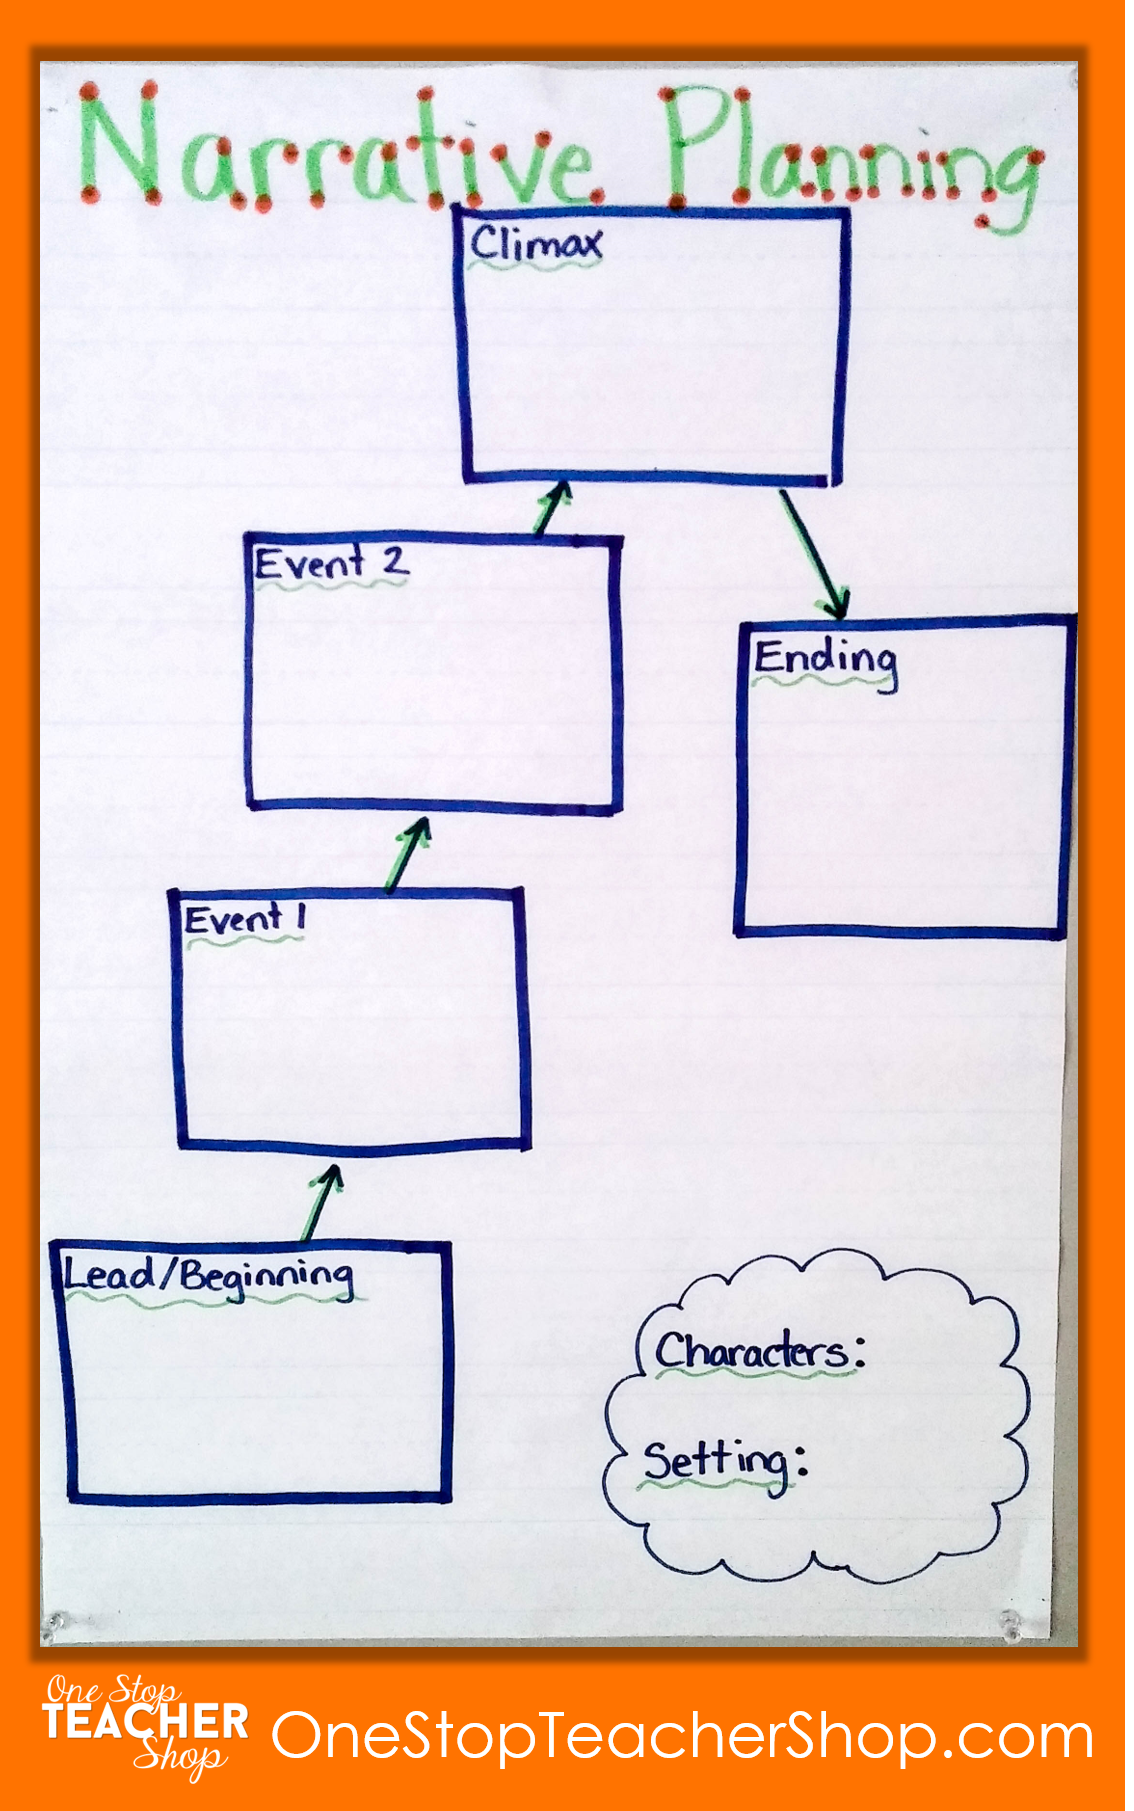 Narrative Writing Anchor Chart - Check out my collection of anchor charts for math, reading, writing, and grammar. I love anchor charts even though I'm not so great at making them! Also, get some tips for using anchor charts effectively in your classroom.